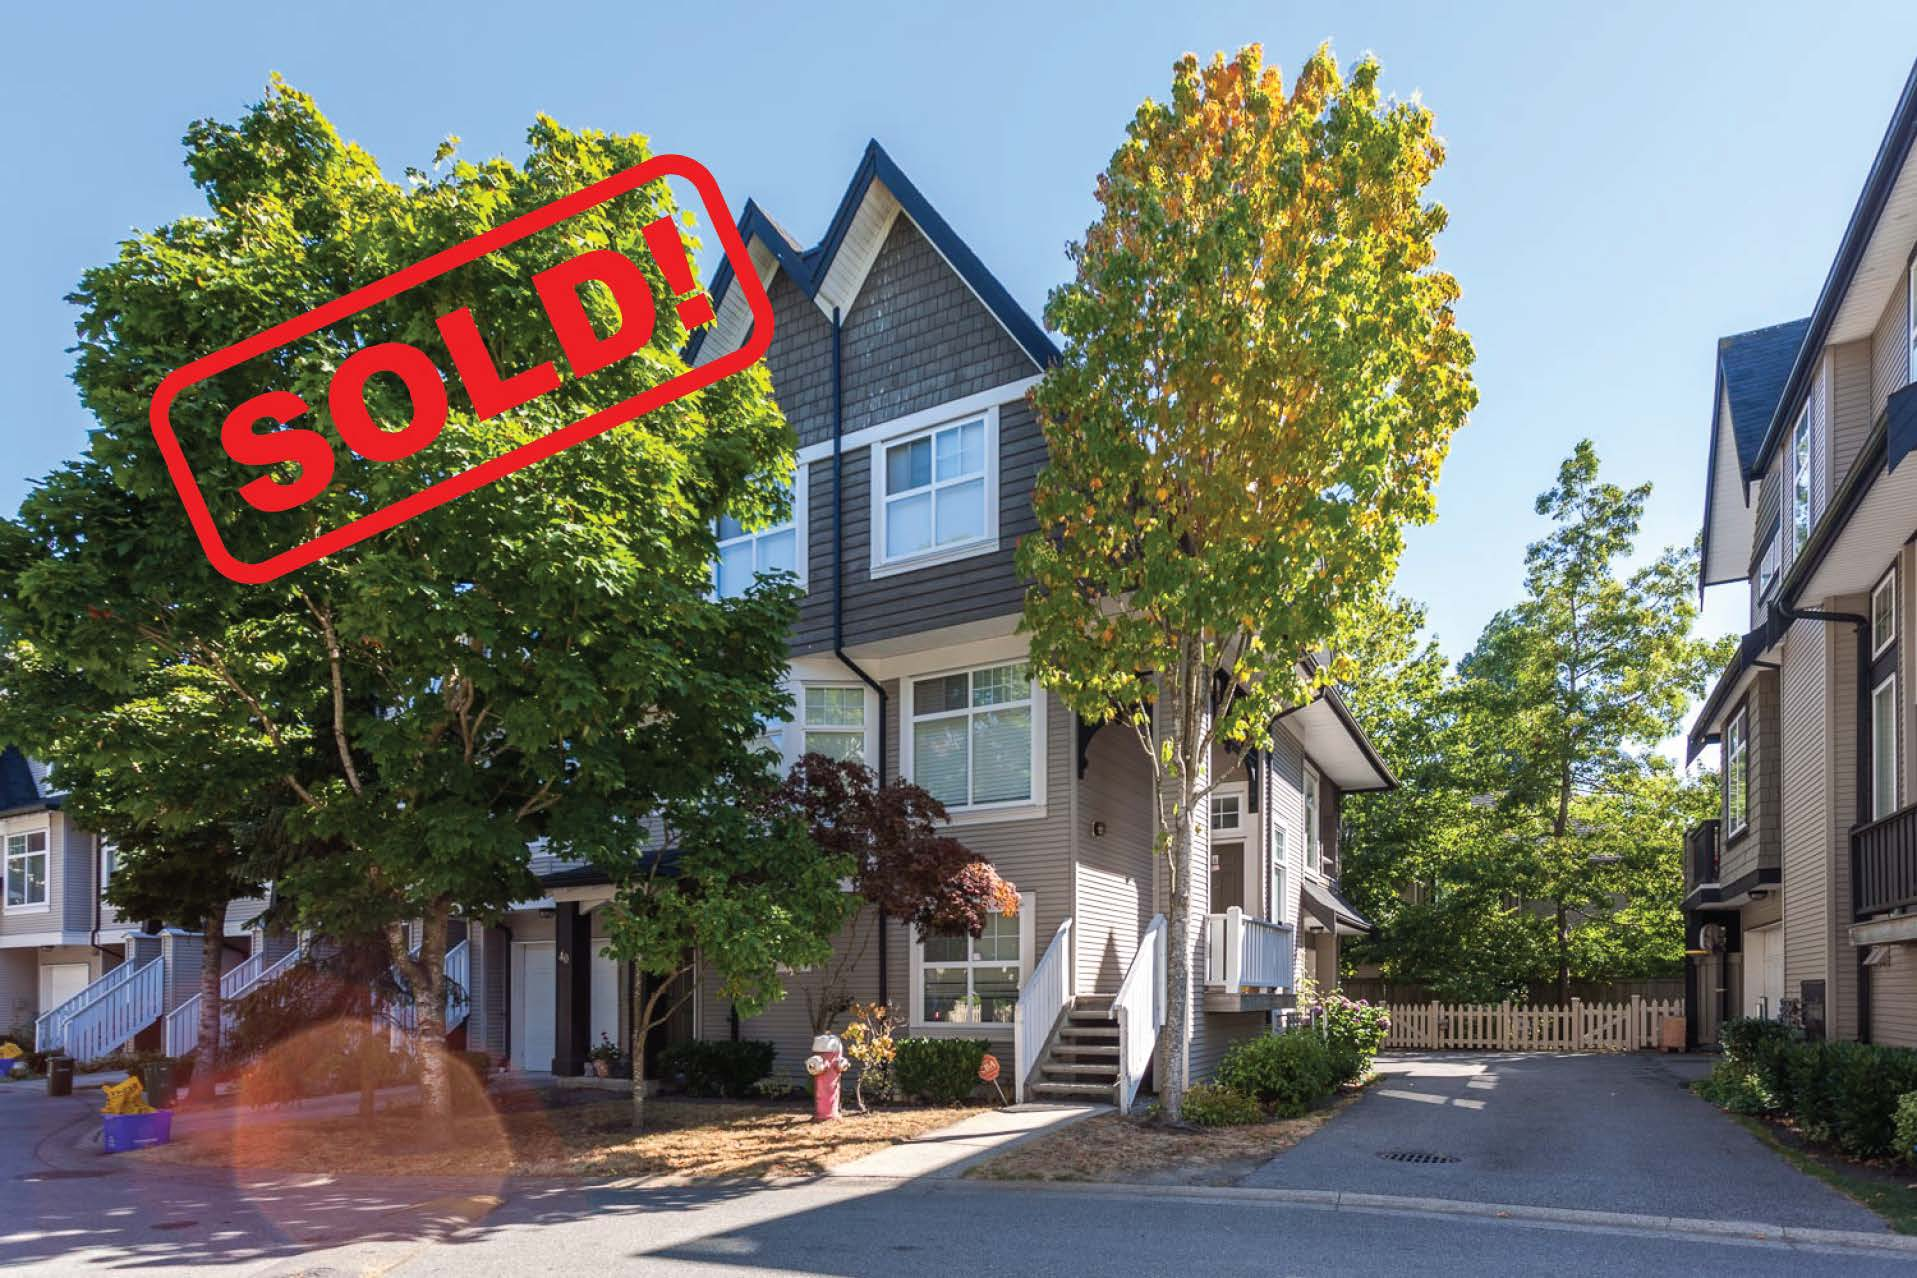 39-6888 Robson Drive   sold for: $1,070,000  4 Bed | 3 Bath | 1,805 SF